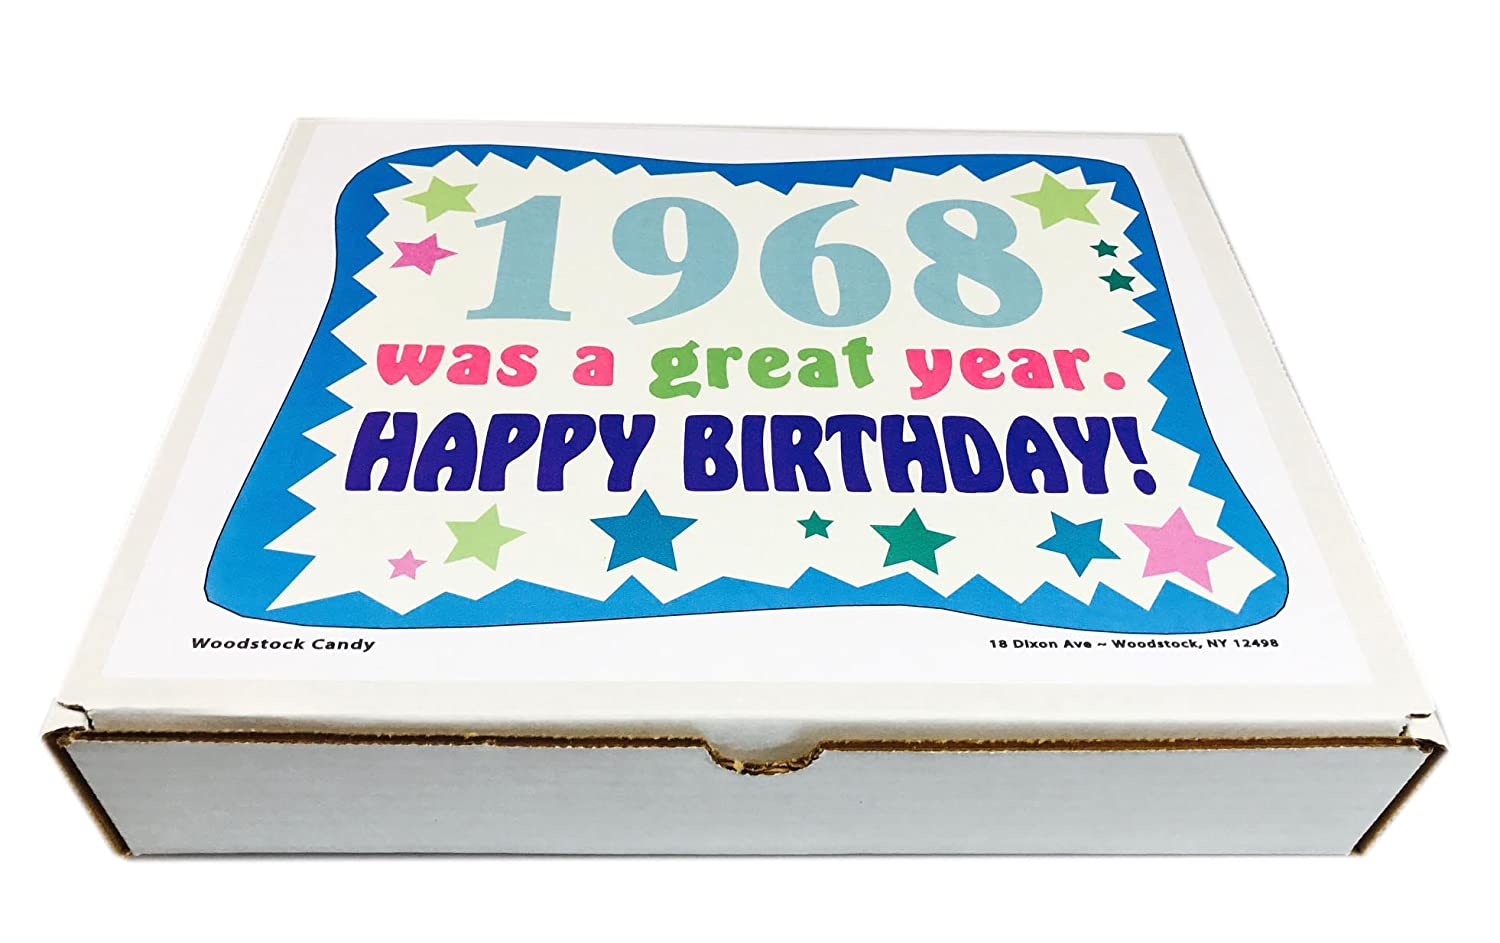 Woodstock Candy 1968 50th Birthday Gift Box Vintage Nostalgic Retro Assortment From Childhood For